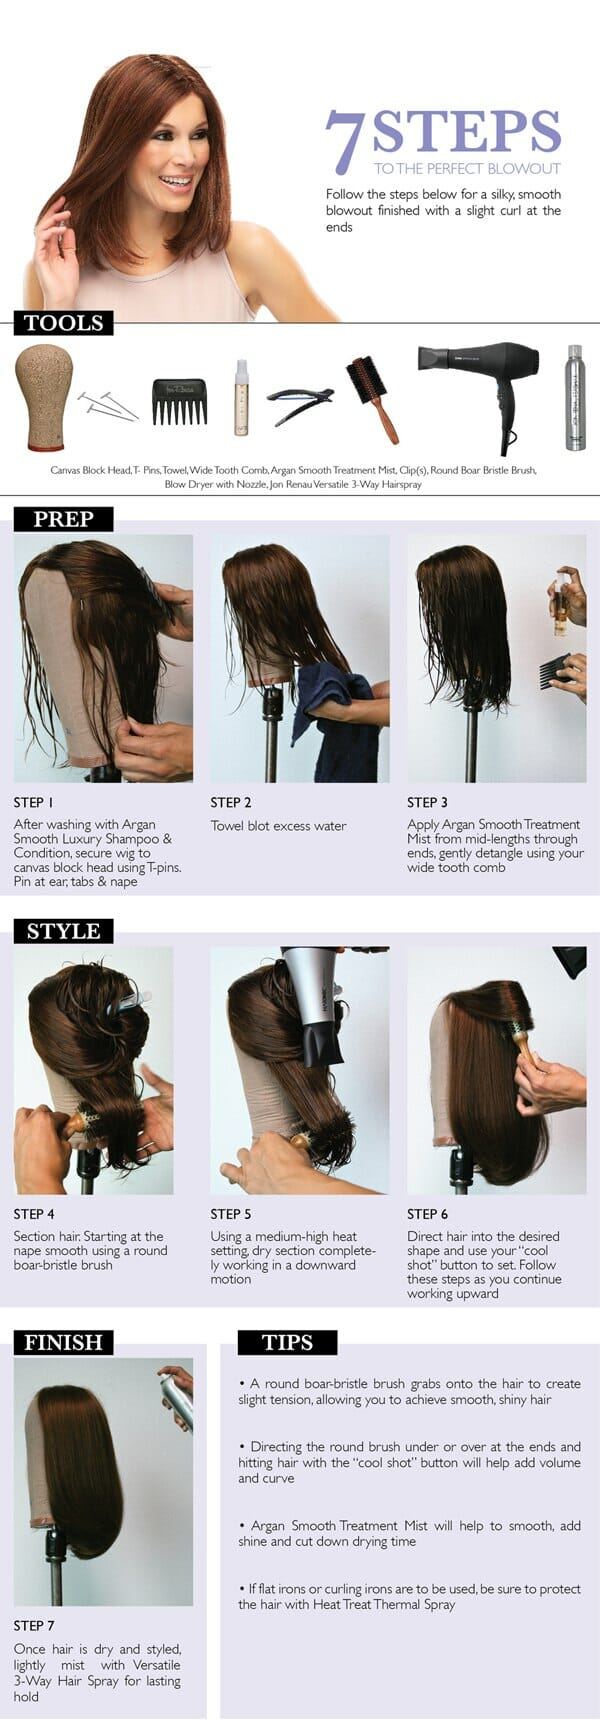 7-steps-to-a-blowout_Jon Renau